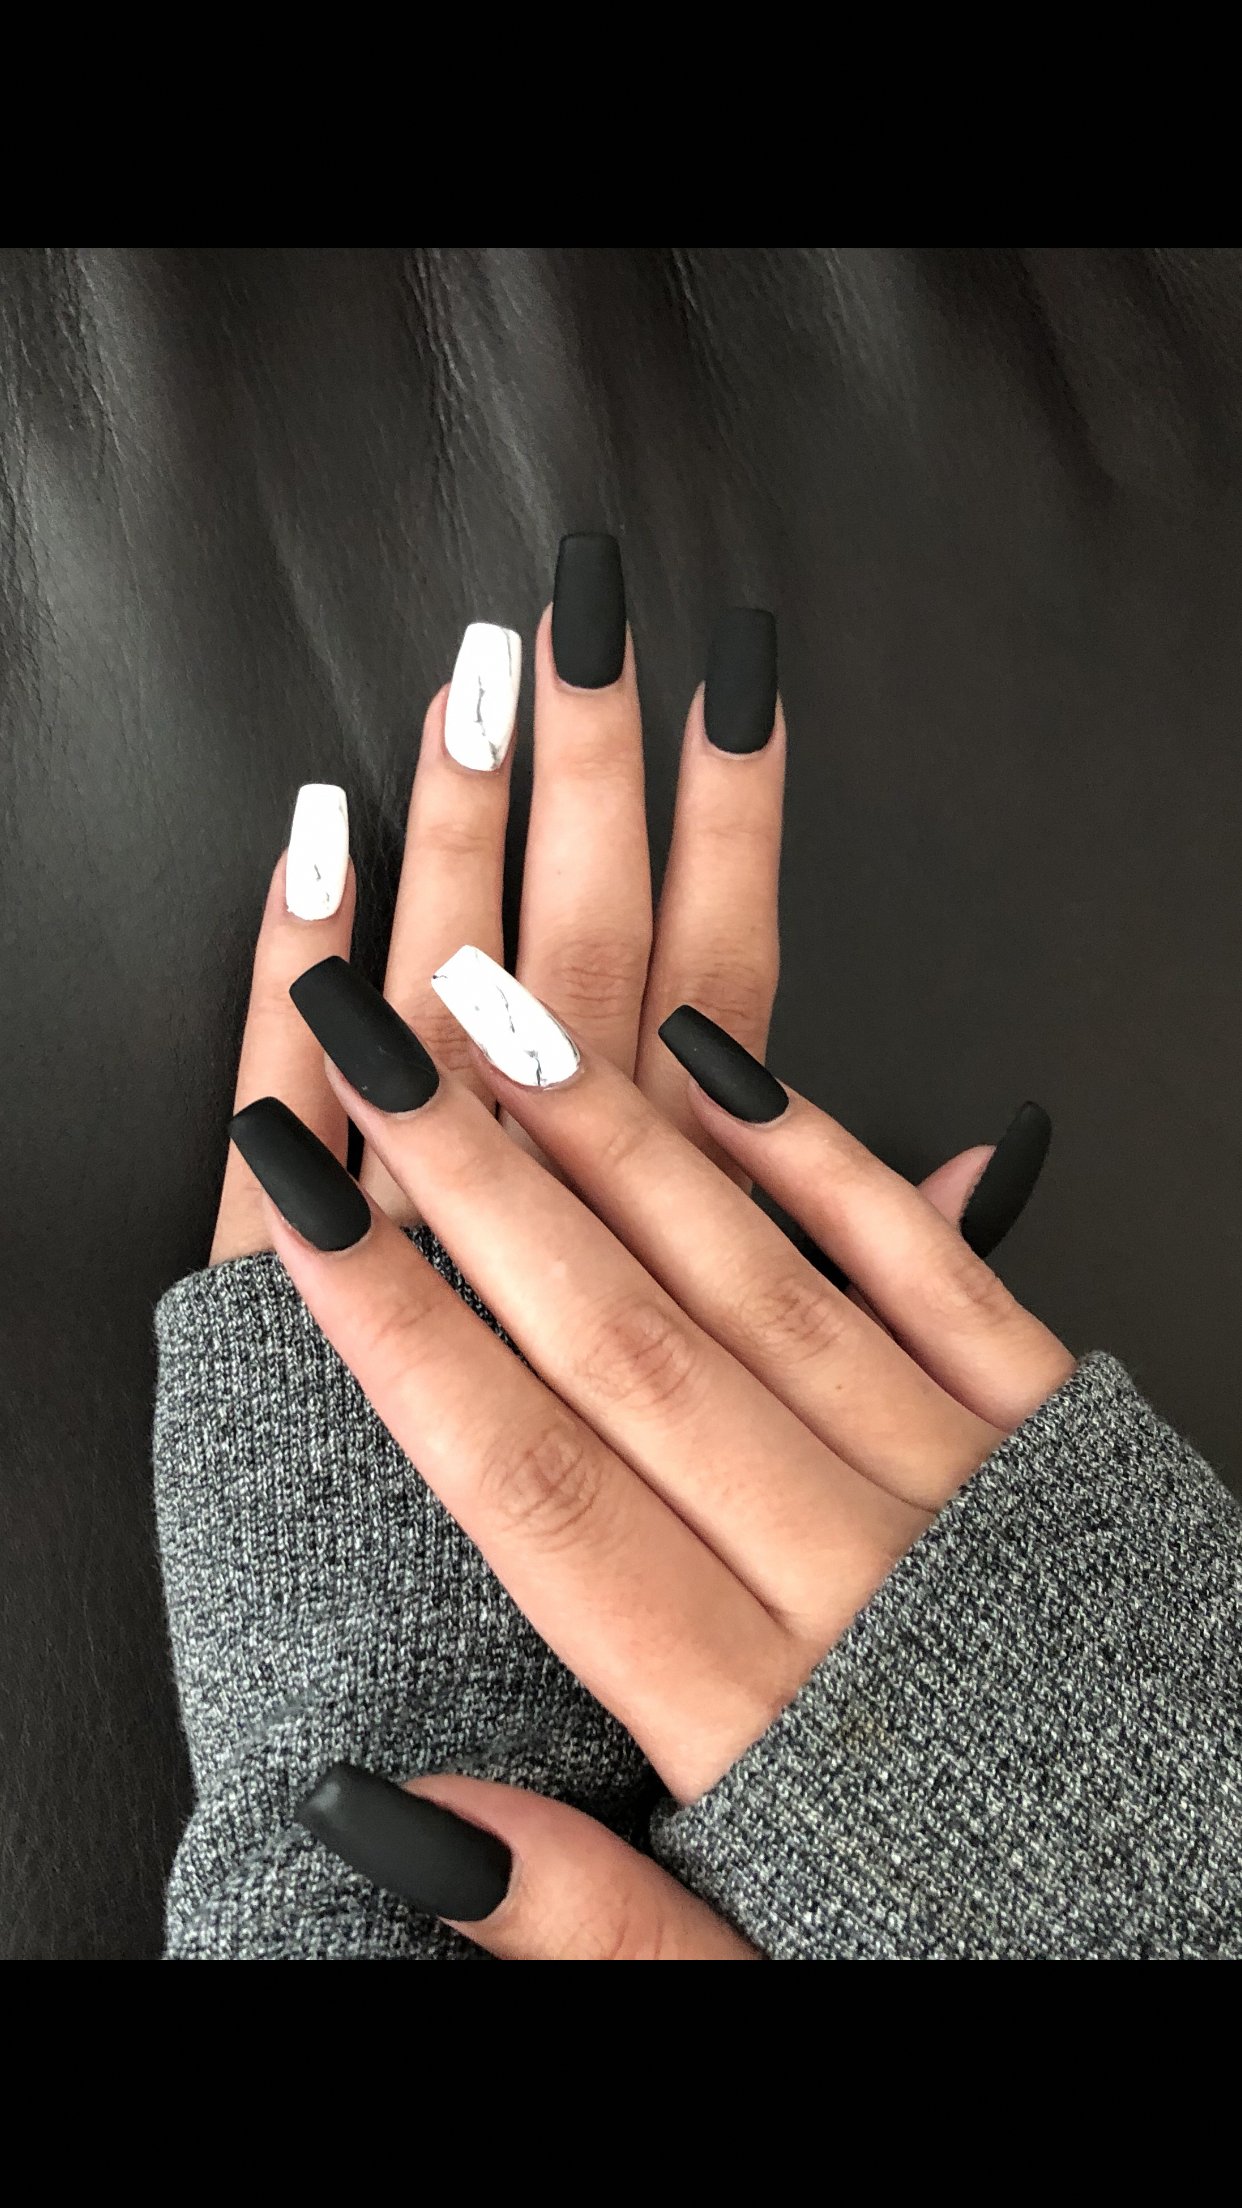 Nails Hashtag Instagram Posts Videos Stories On Picoji Com Solid Color Nails Cute Acrylic Nails Cute Nails